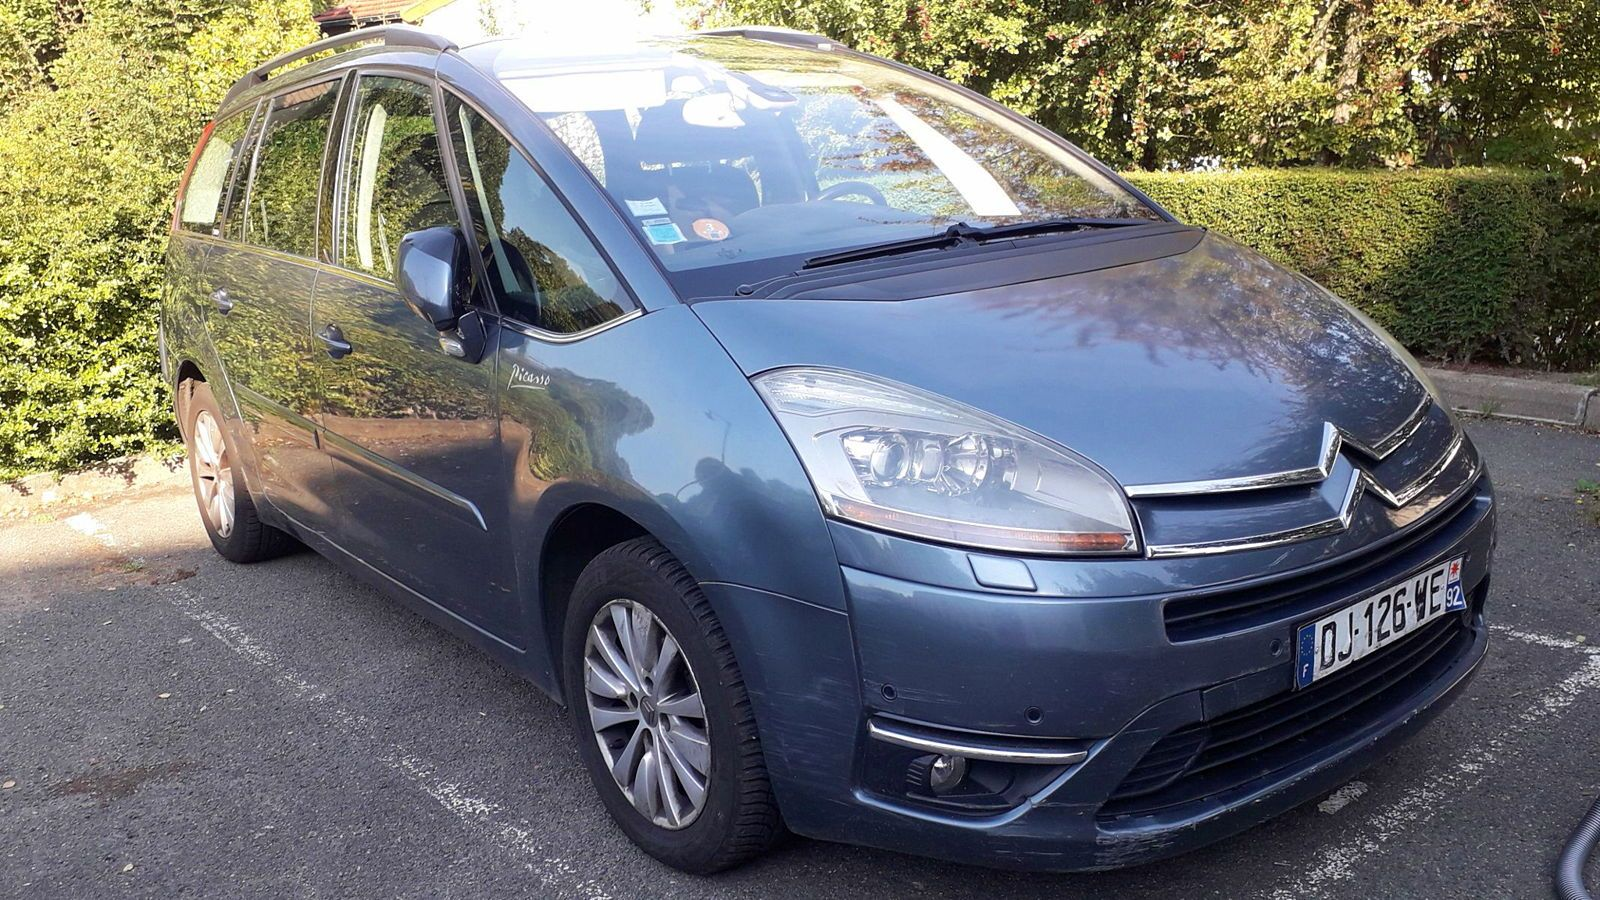 Vends Grand C4 Picasso, diesel, 138 ch, 2008, 265 525 kms